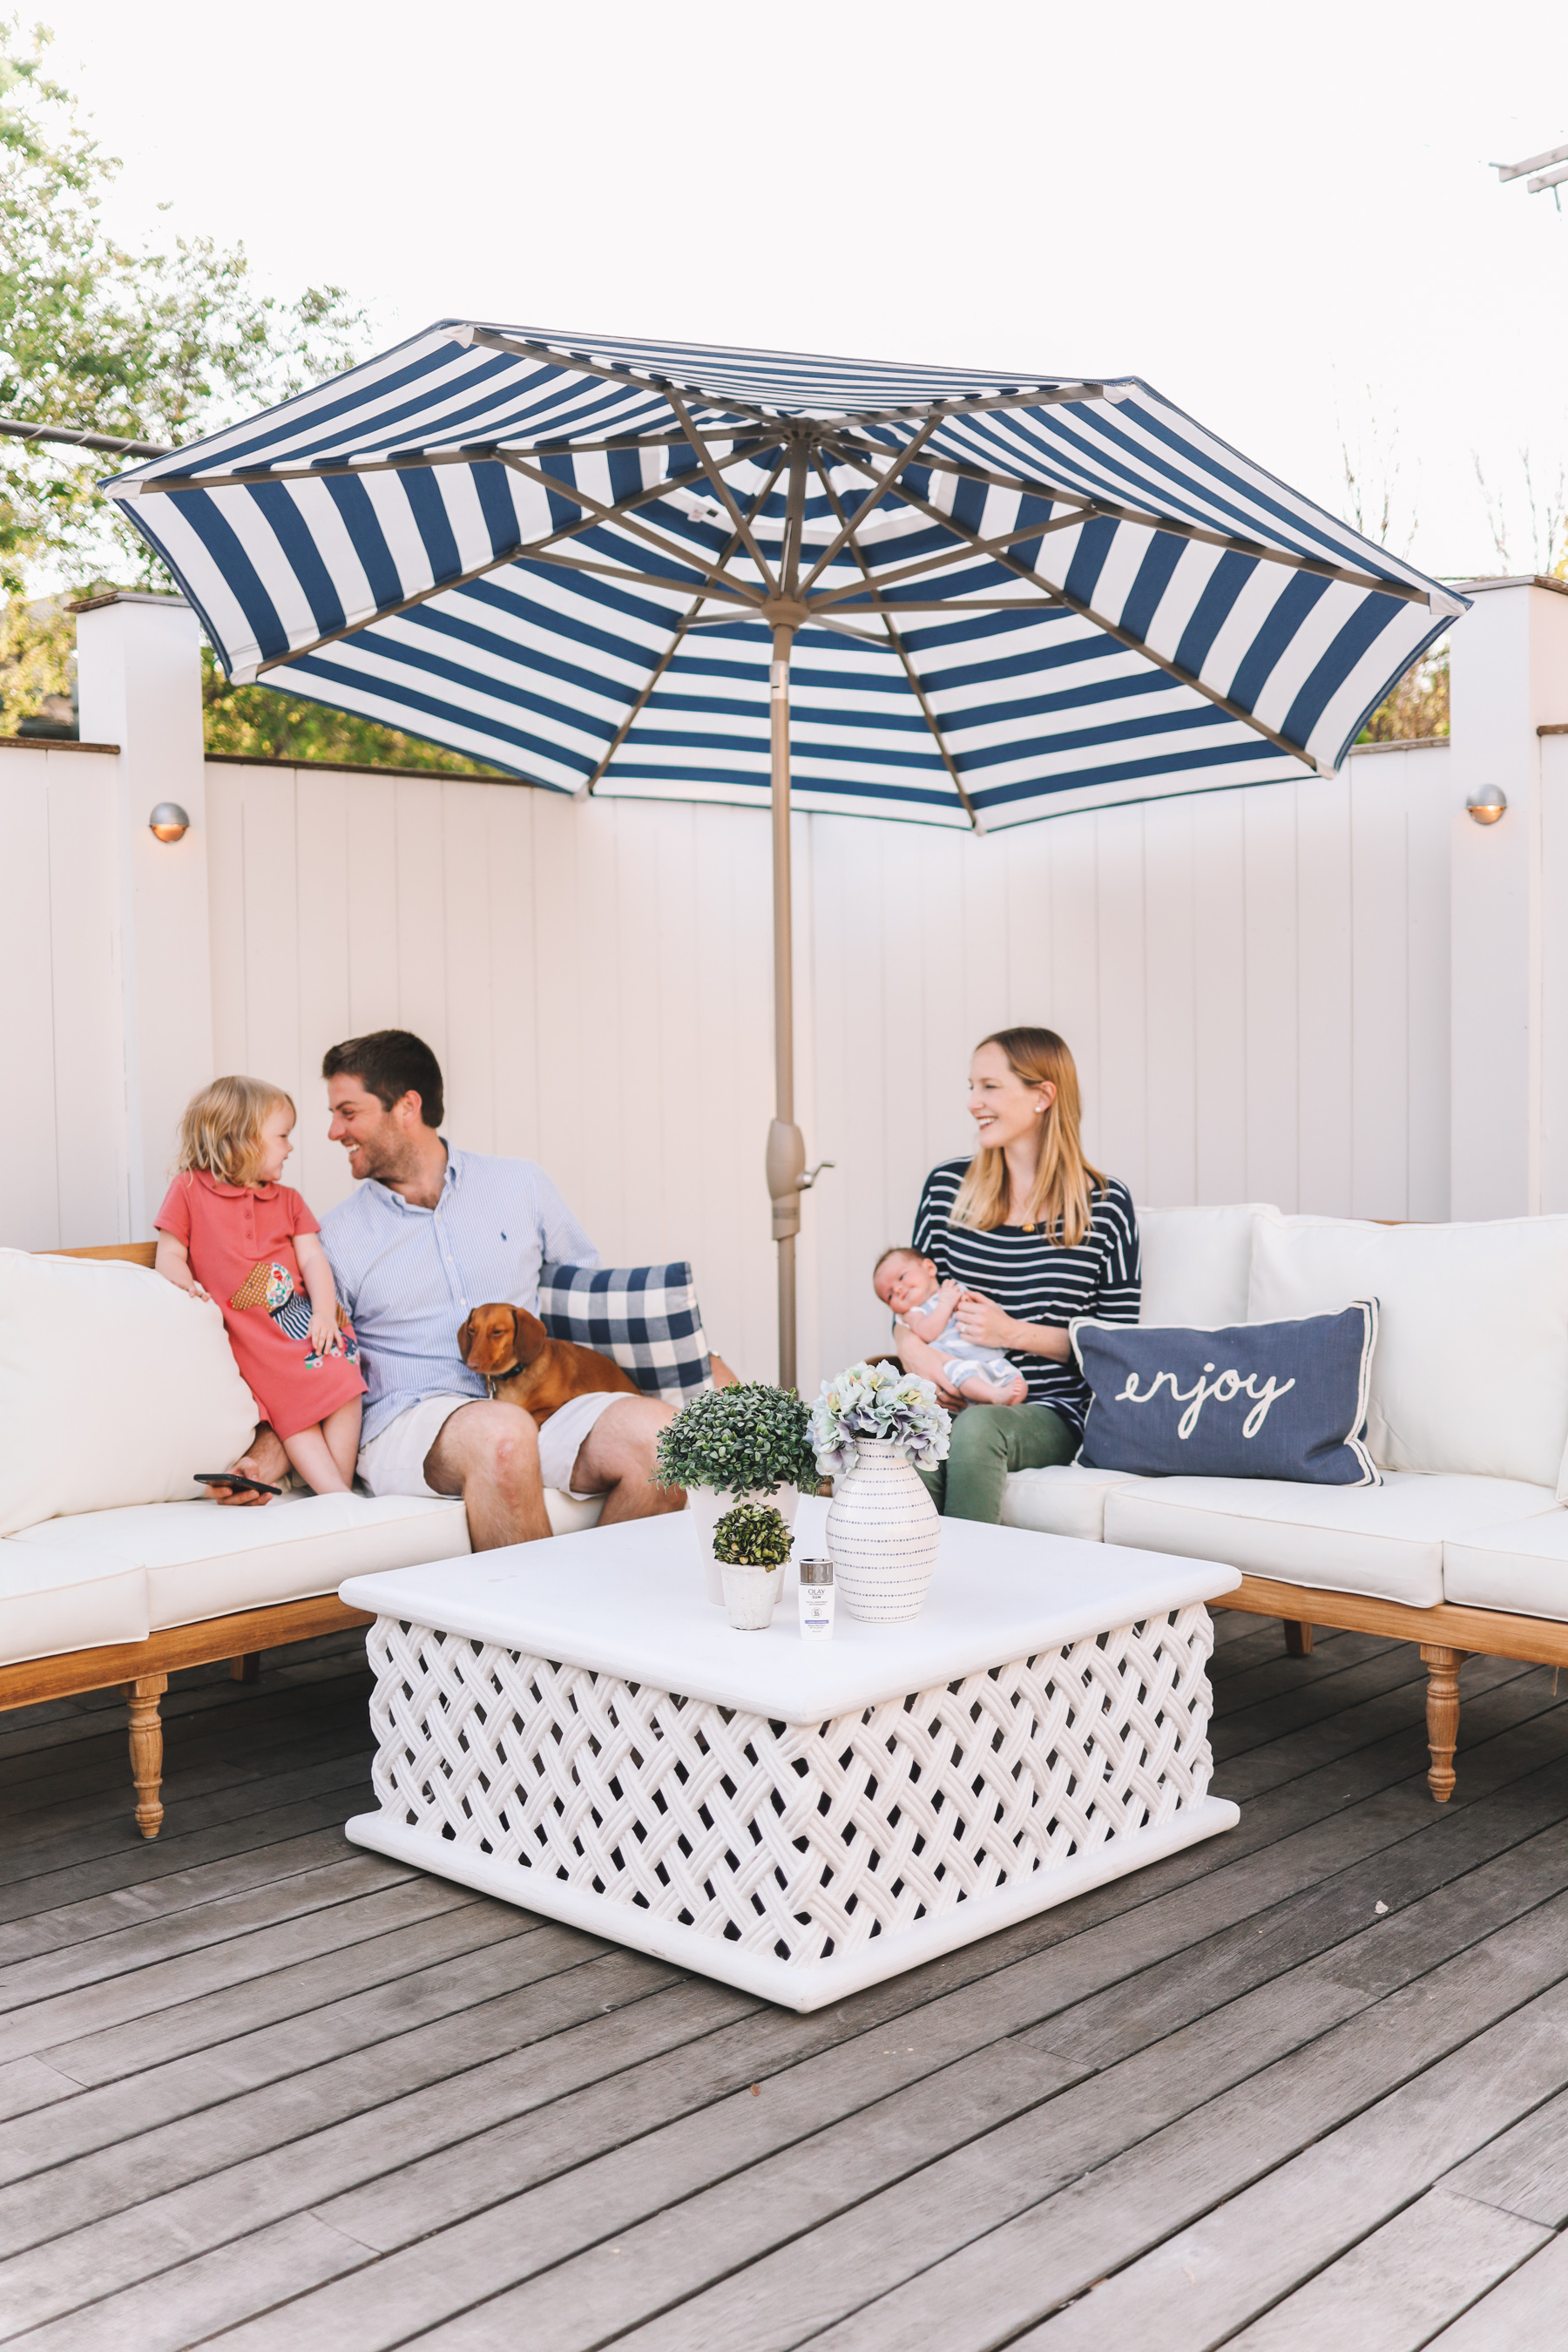 Happy family enjoying their preppy deck